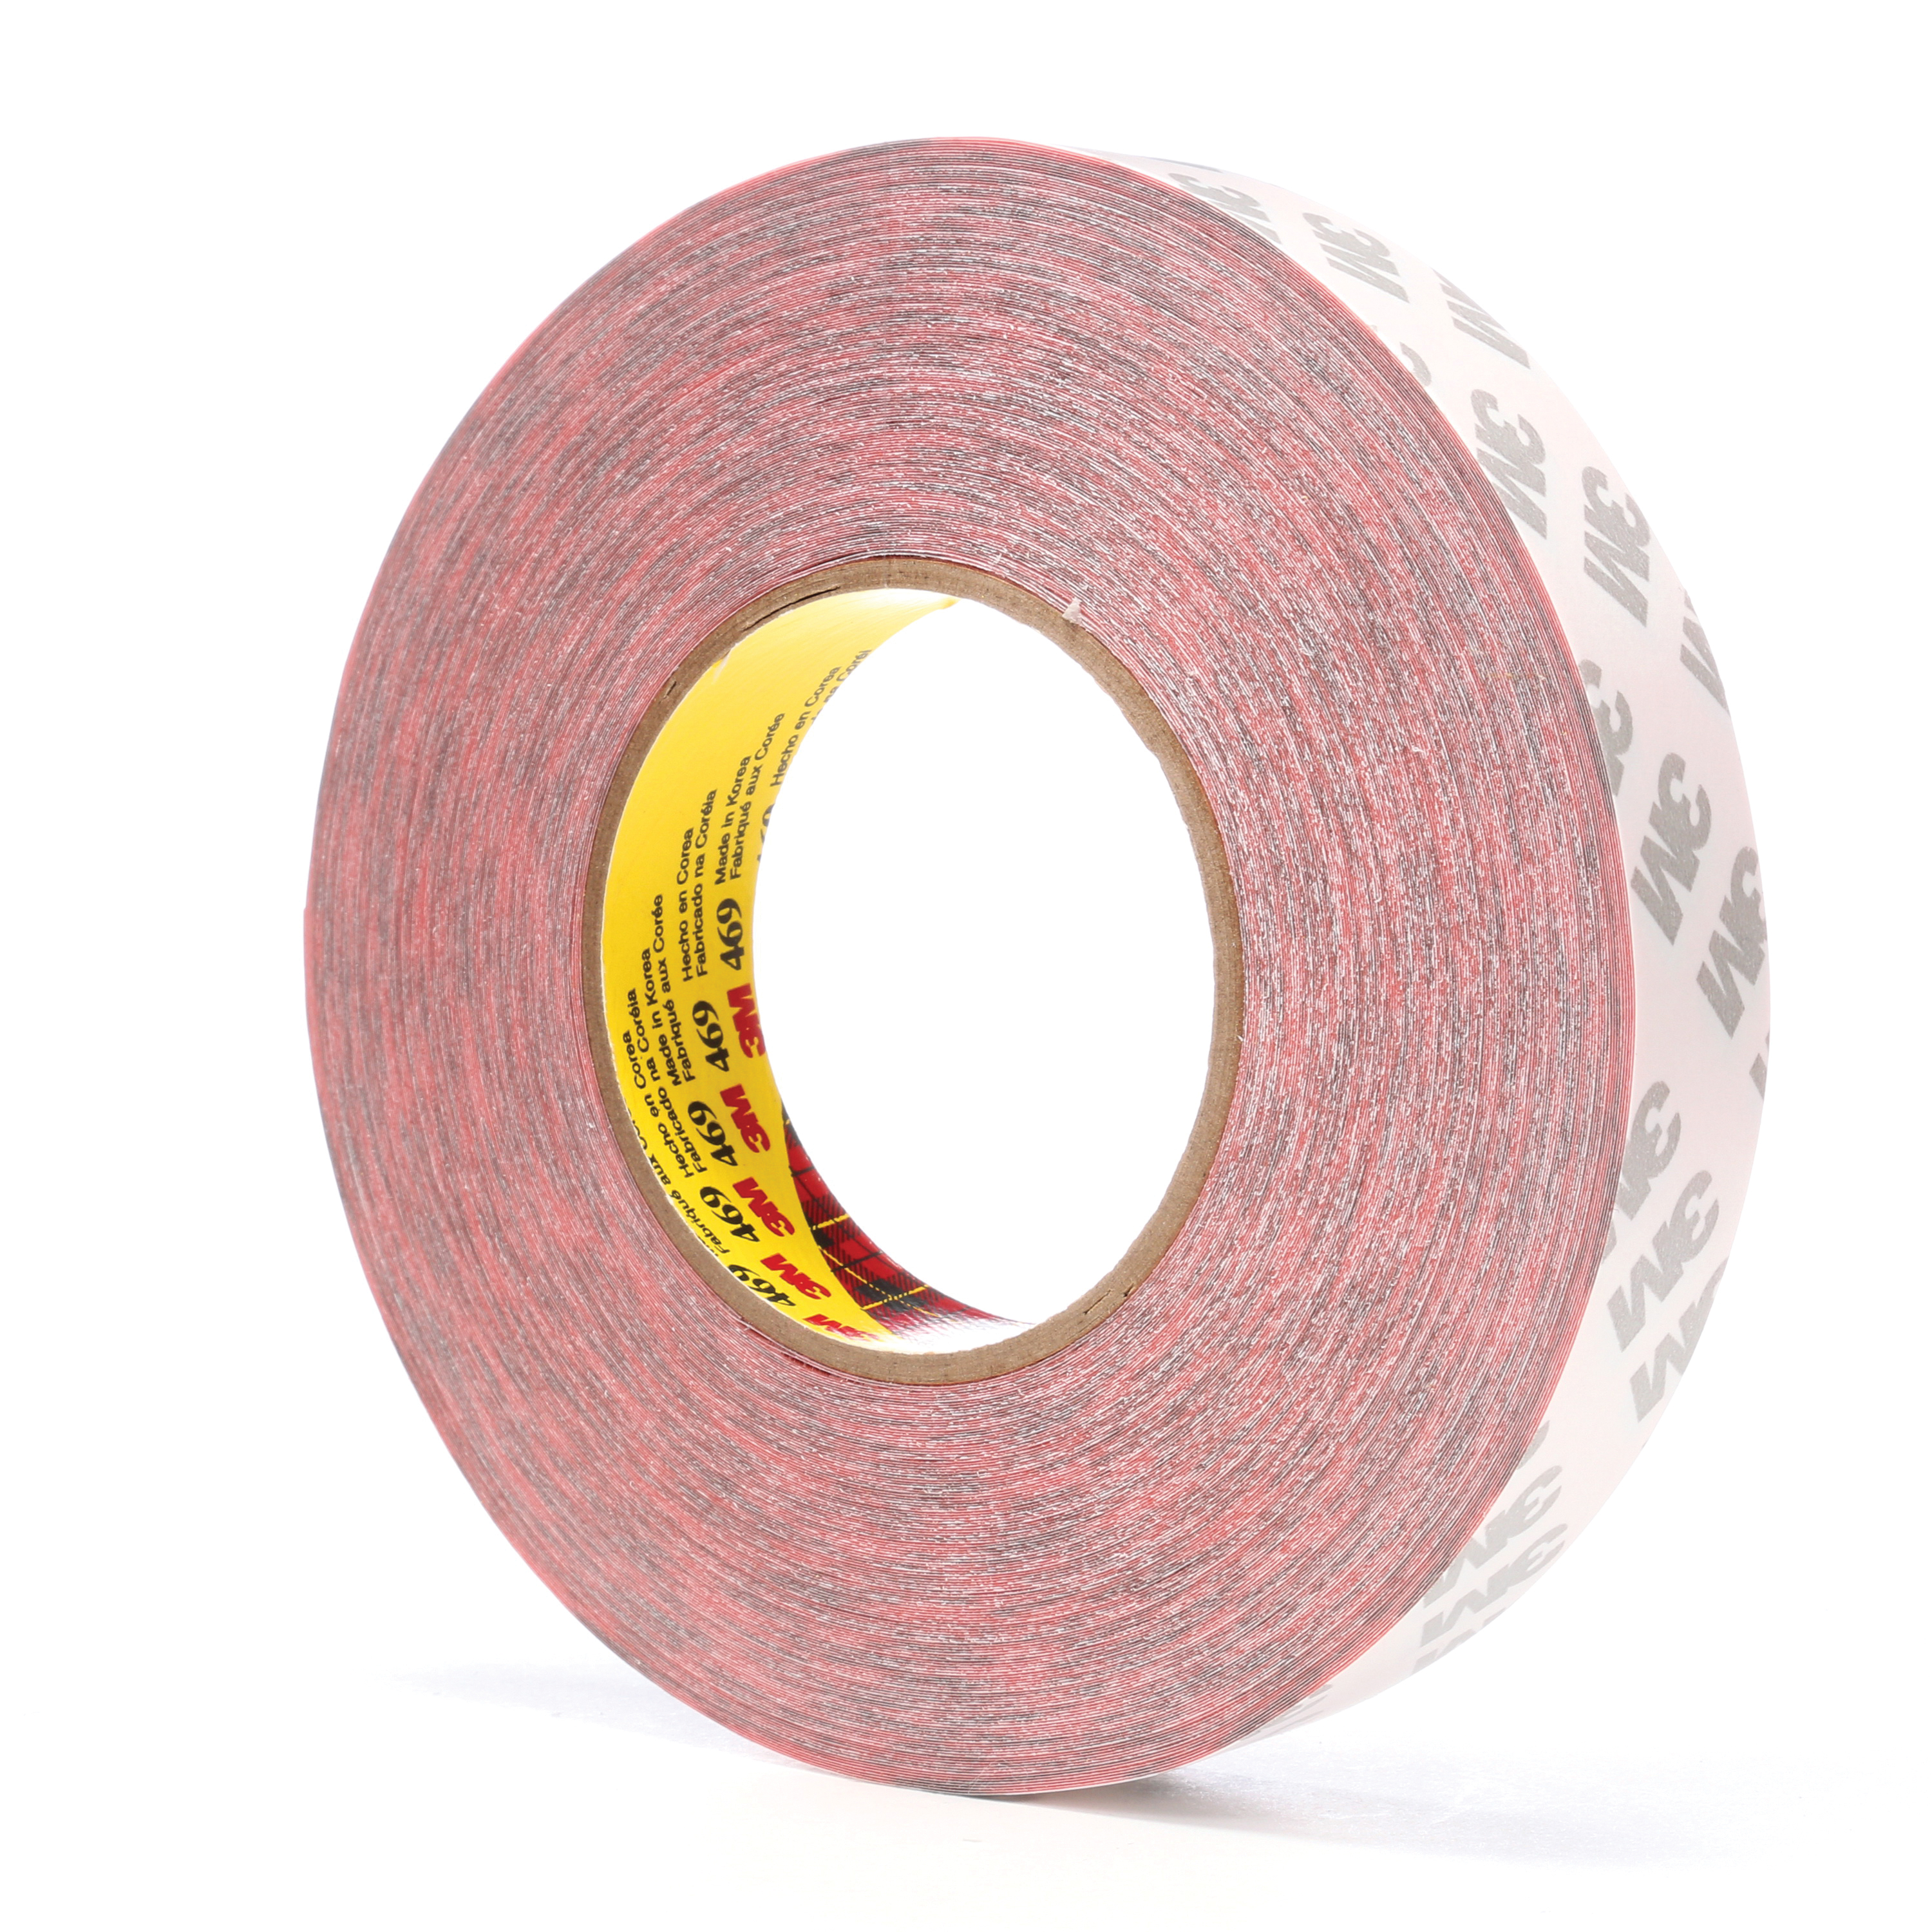 3M™ 021200-38391 Non-Repulpable Double Coated Splicing Tape, 60 yd L x 1 in W, 5.5 mil THK, 340 Acrylic Adhesive, Tissue Paper Backing, Red